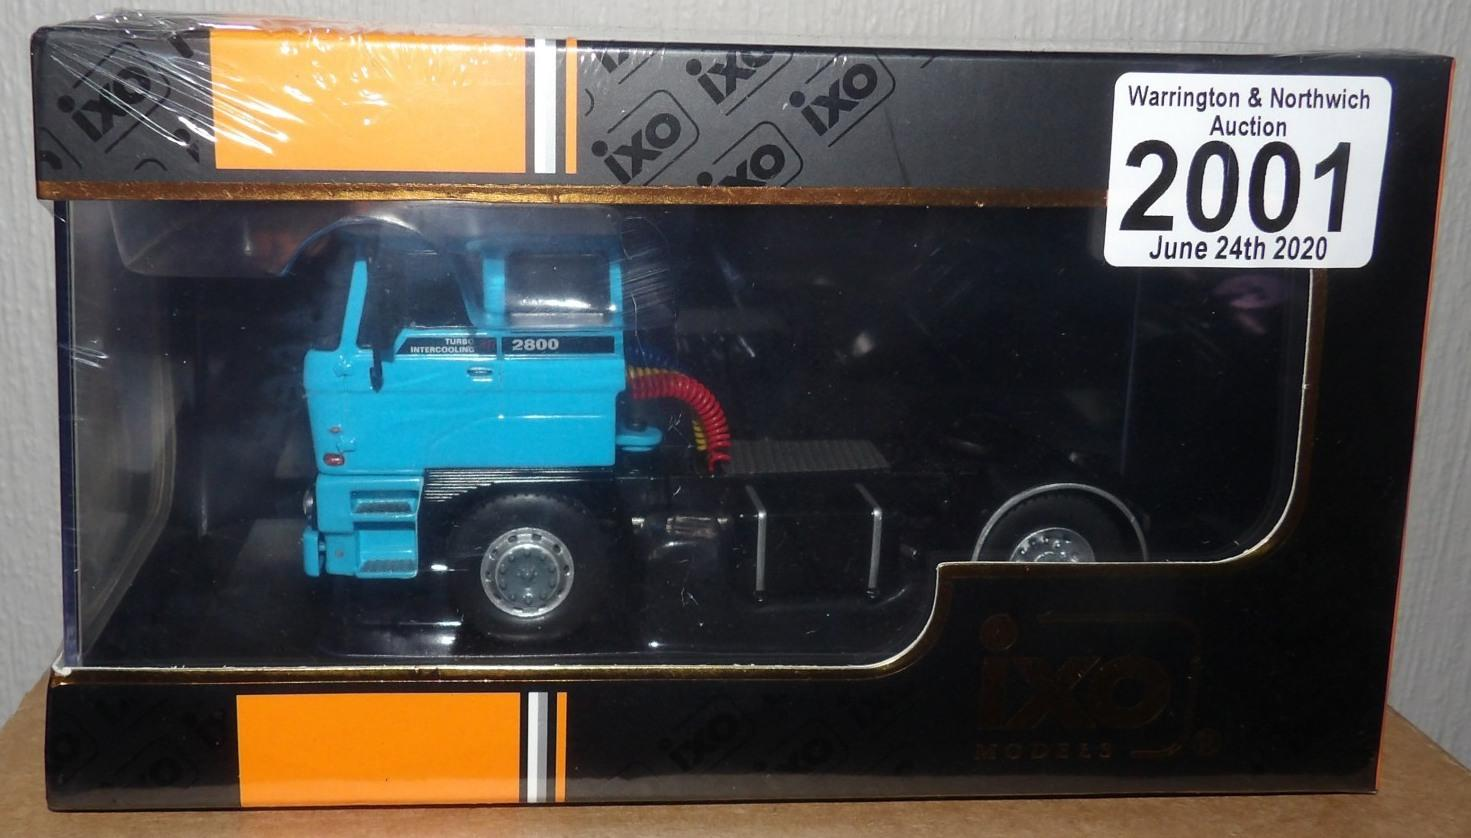 Lot 2001 - IXO 1.43 Scale DAF 2800 1975 in light blue. P&P Group 1 (£14+VAT for the first lot and £1+VAT for